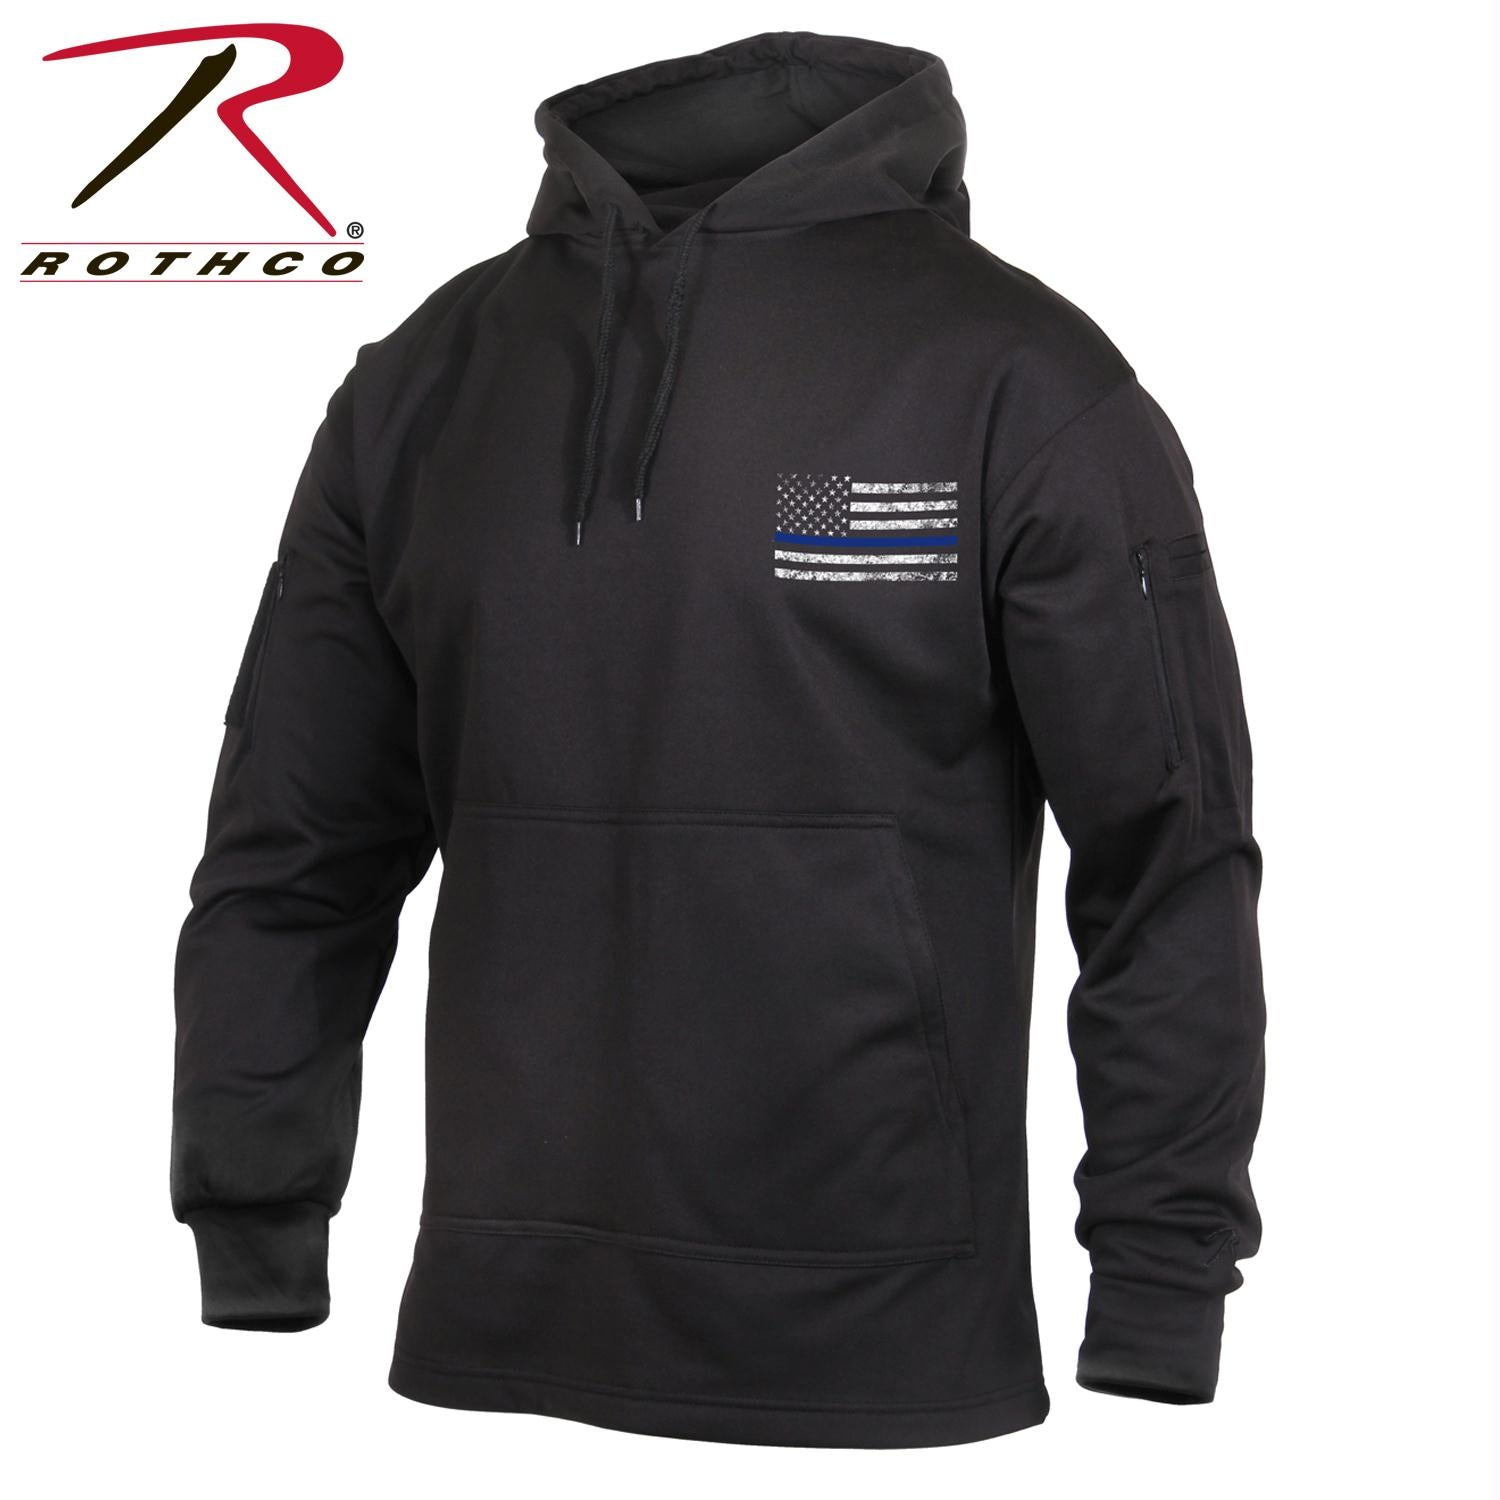 Rothco Thin Blue Line Concealed Carry Hoodie - Black / L